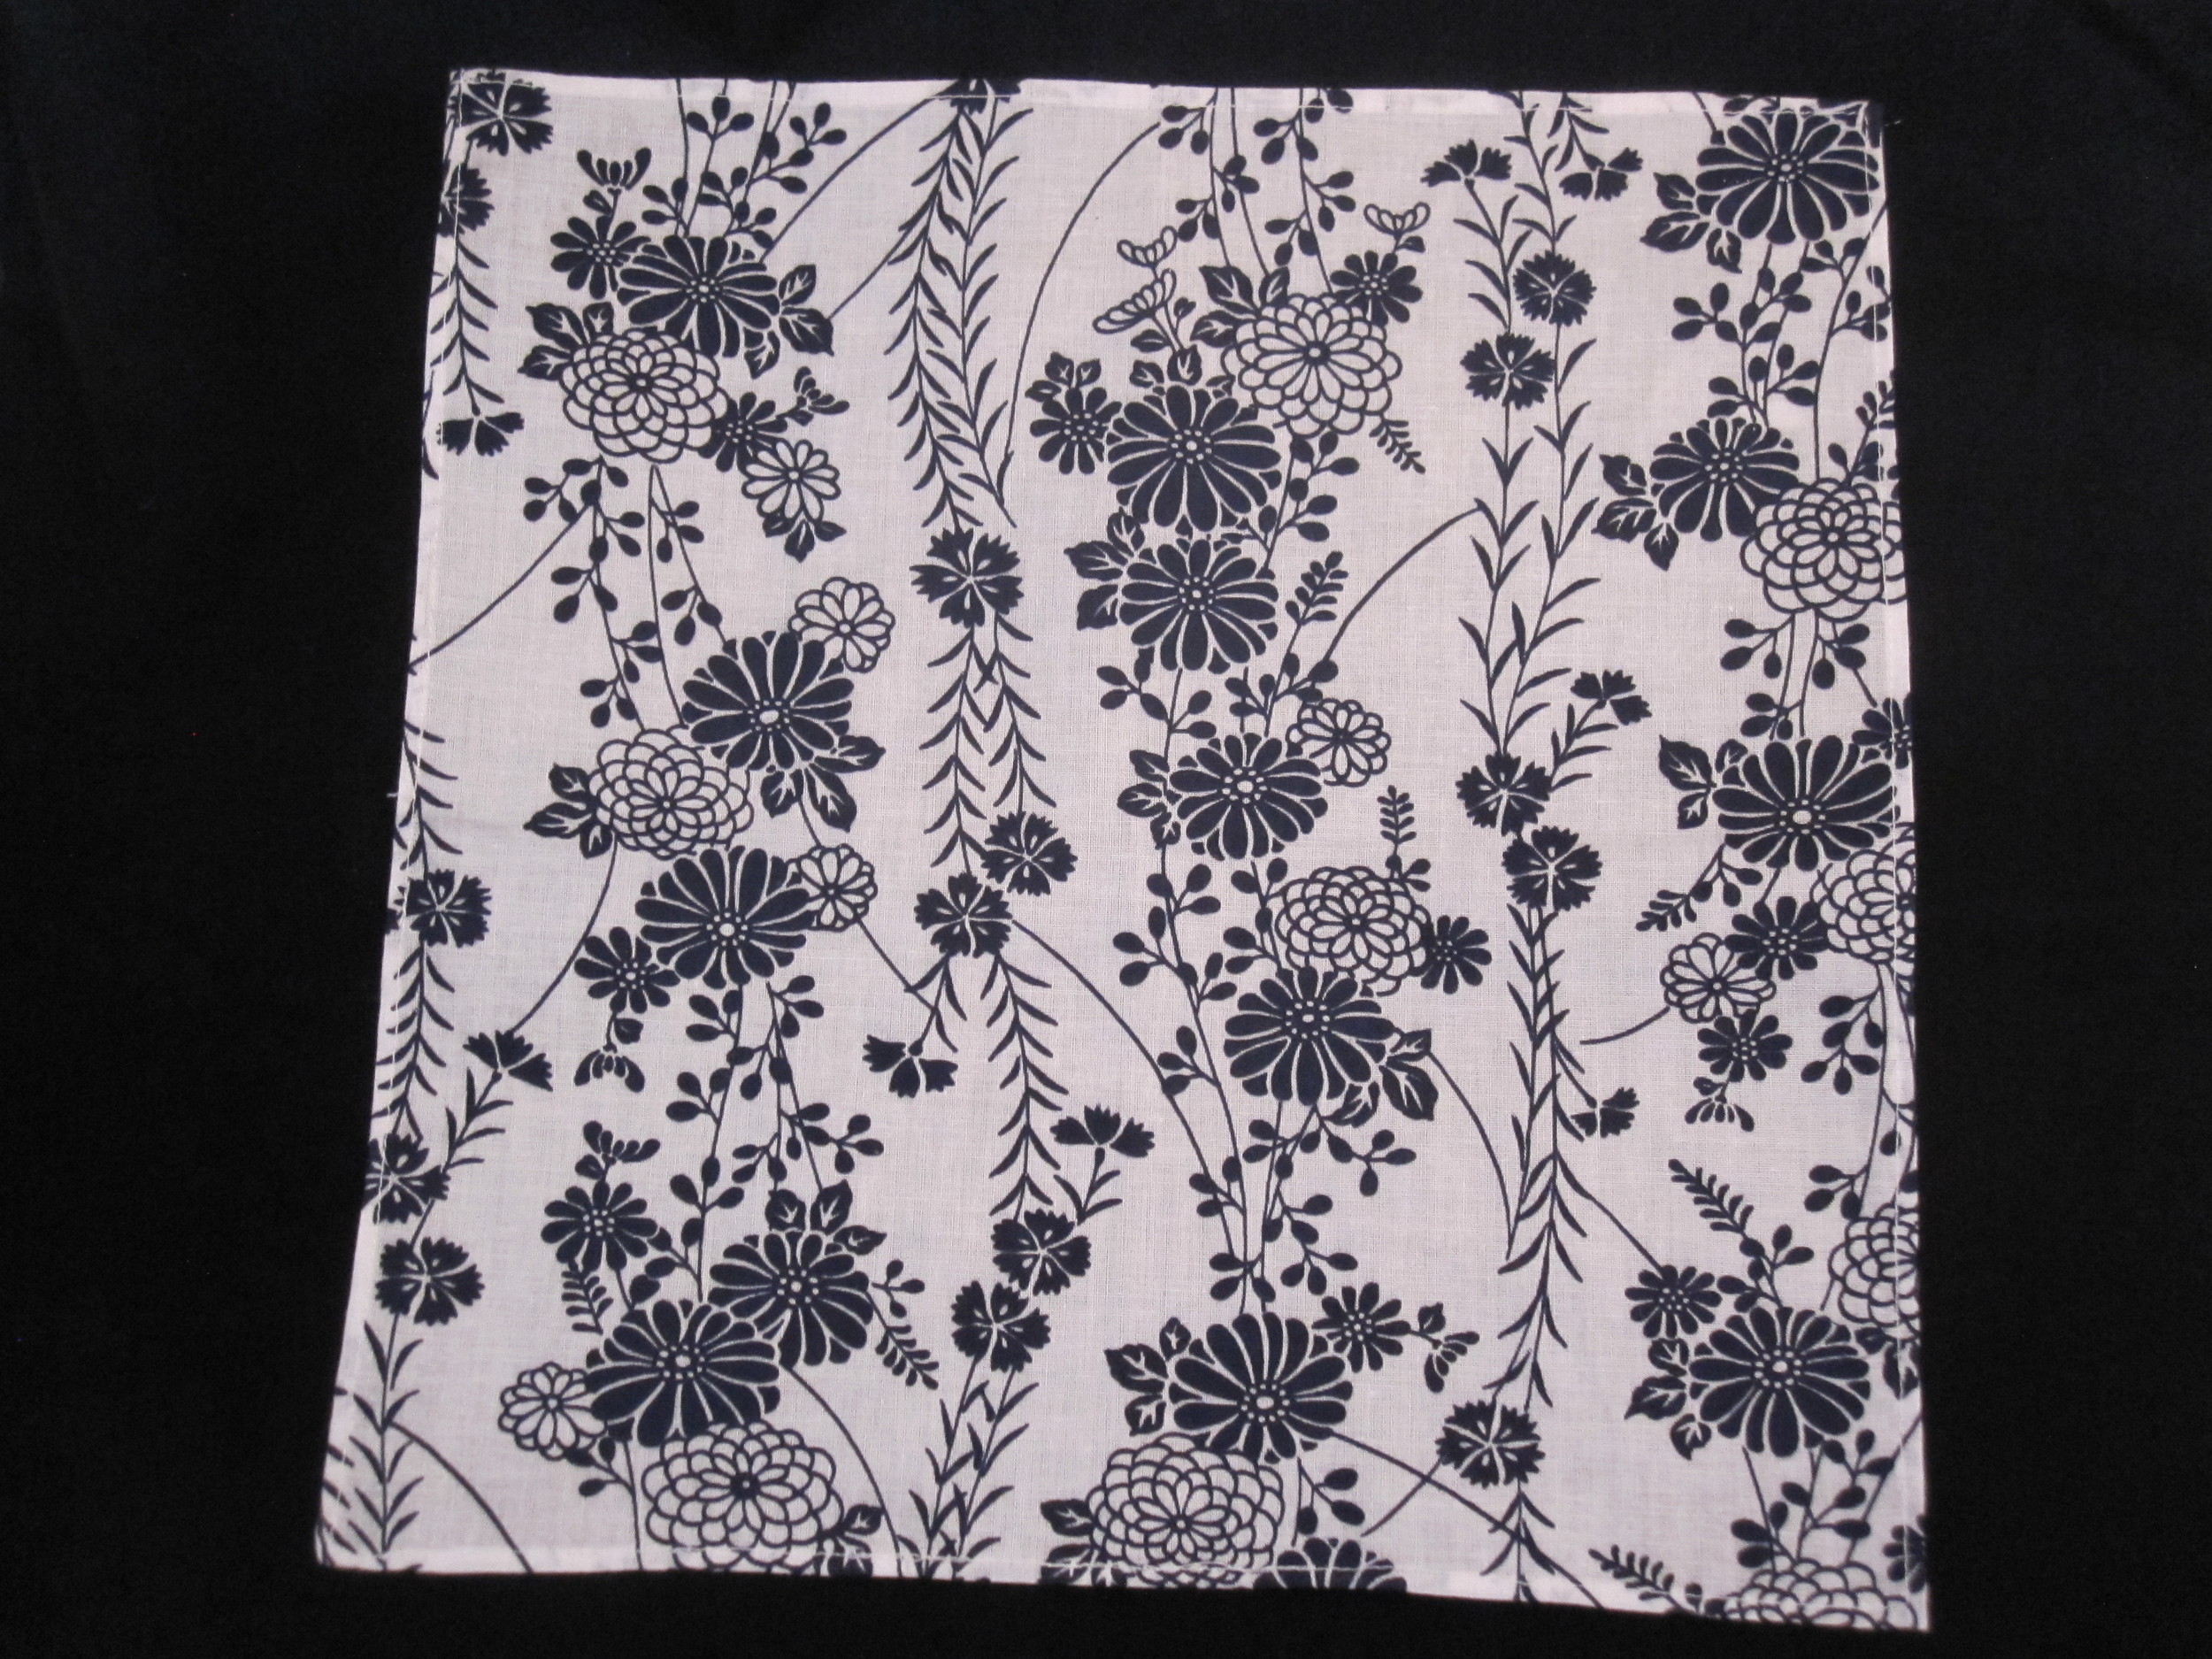 Chrysanthemum and Cherry Blossom Pocket Square